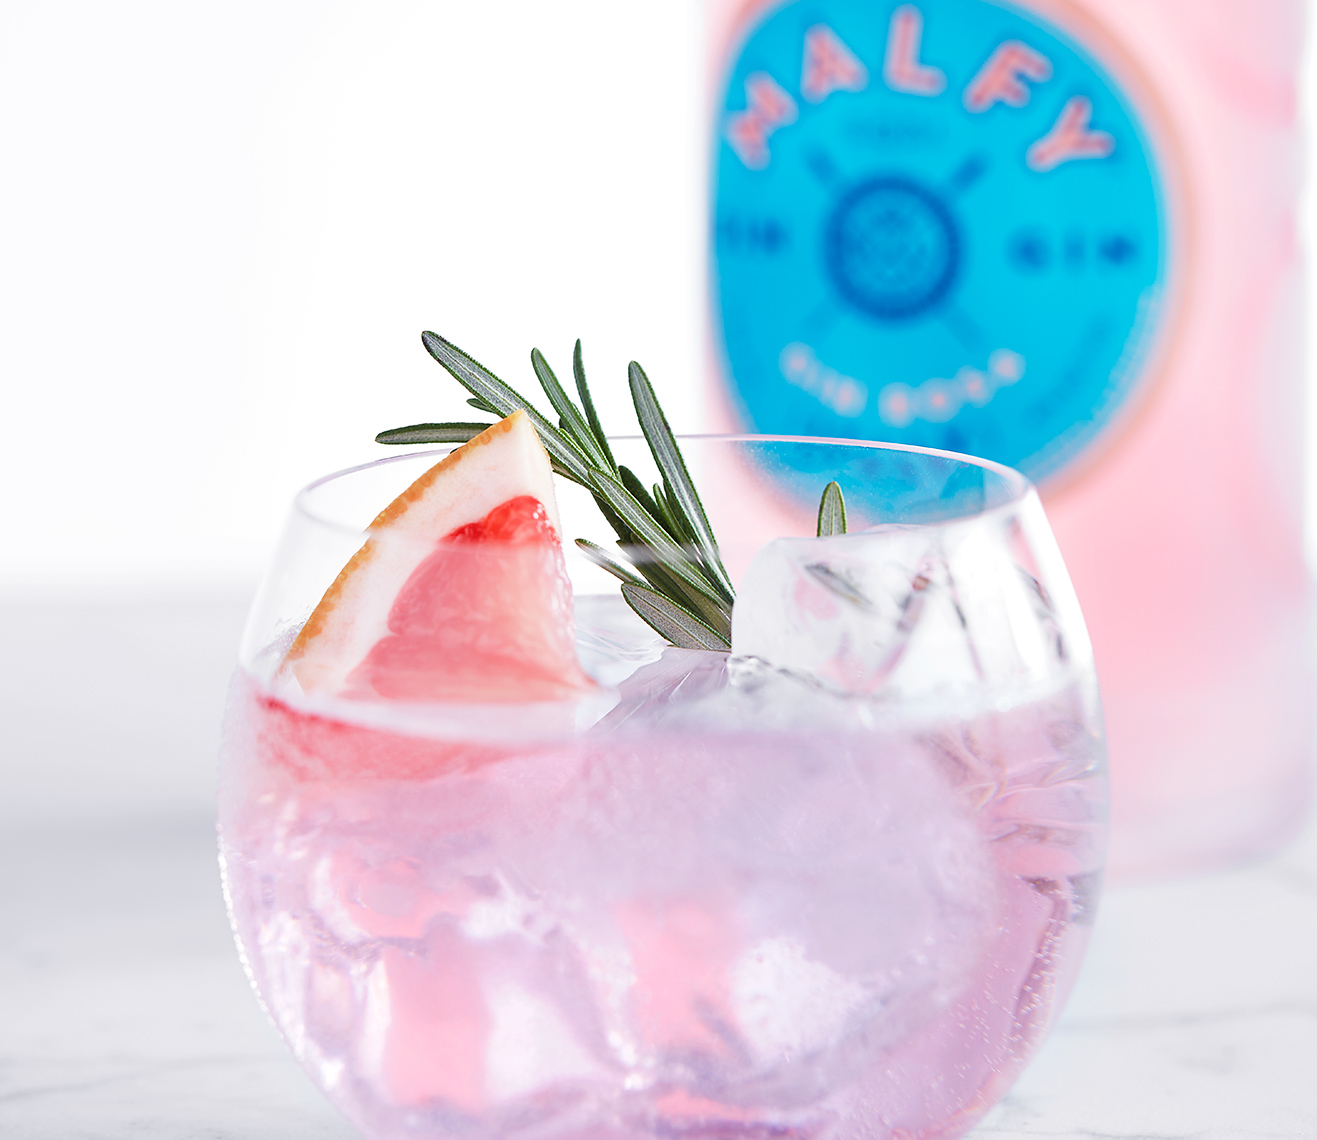 Red Productions Product & Still Life Photography Malfy Con Rosa Pink Gin And Tonic Cocktail